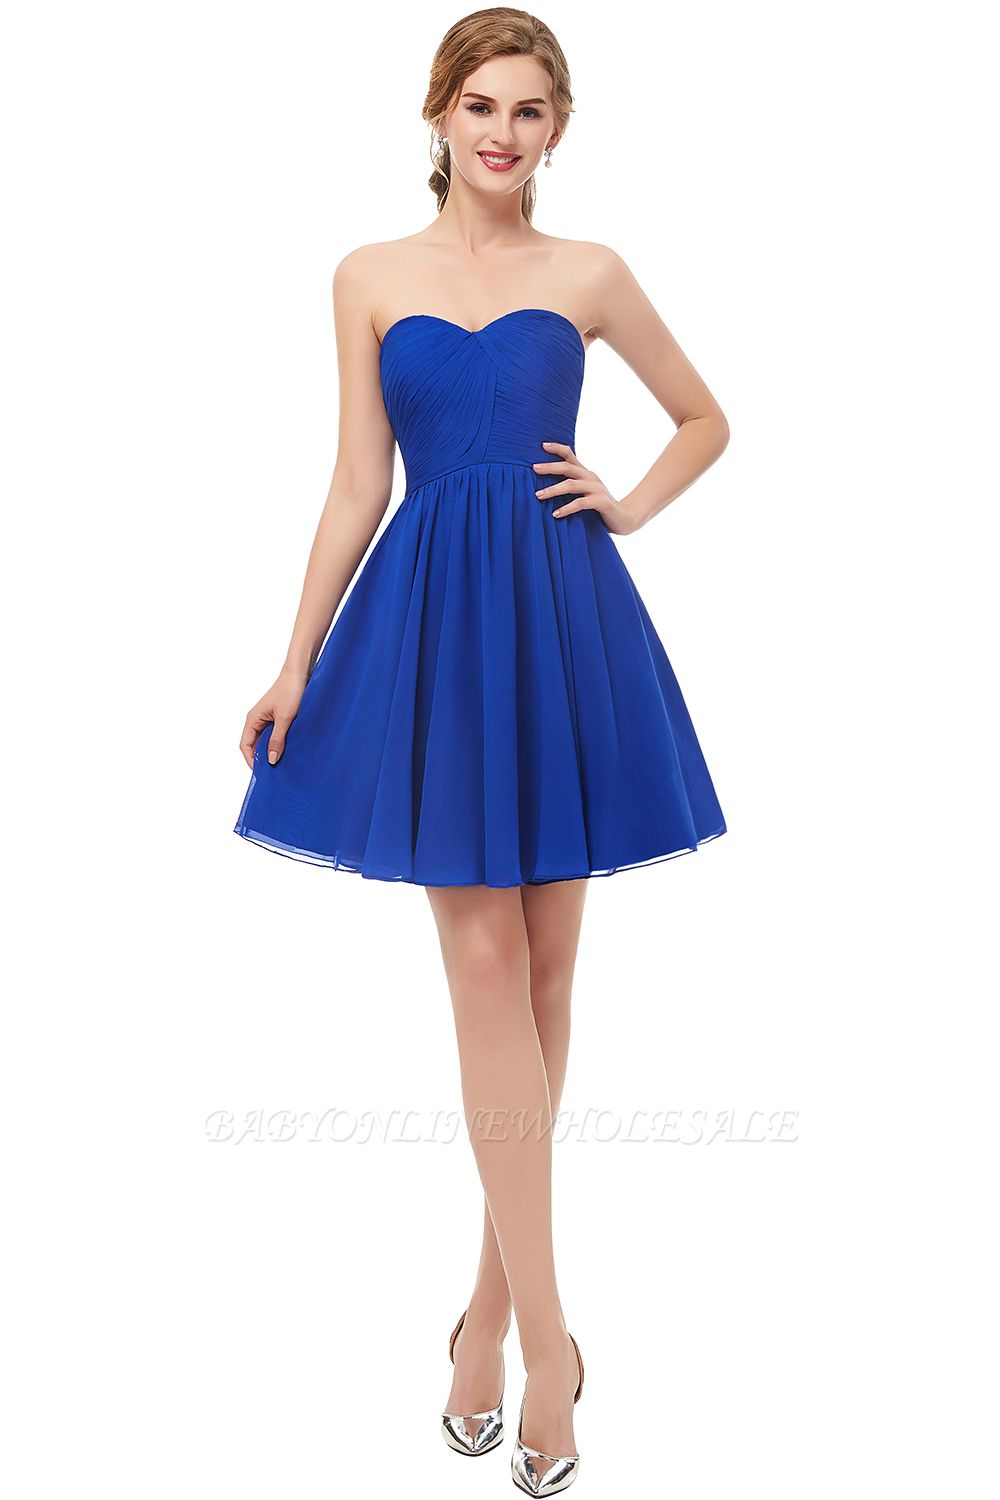 NETTIE | Aline Short Sweetheart Strapless Chiffon Blue Homecoming Dresses